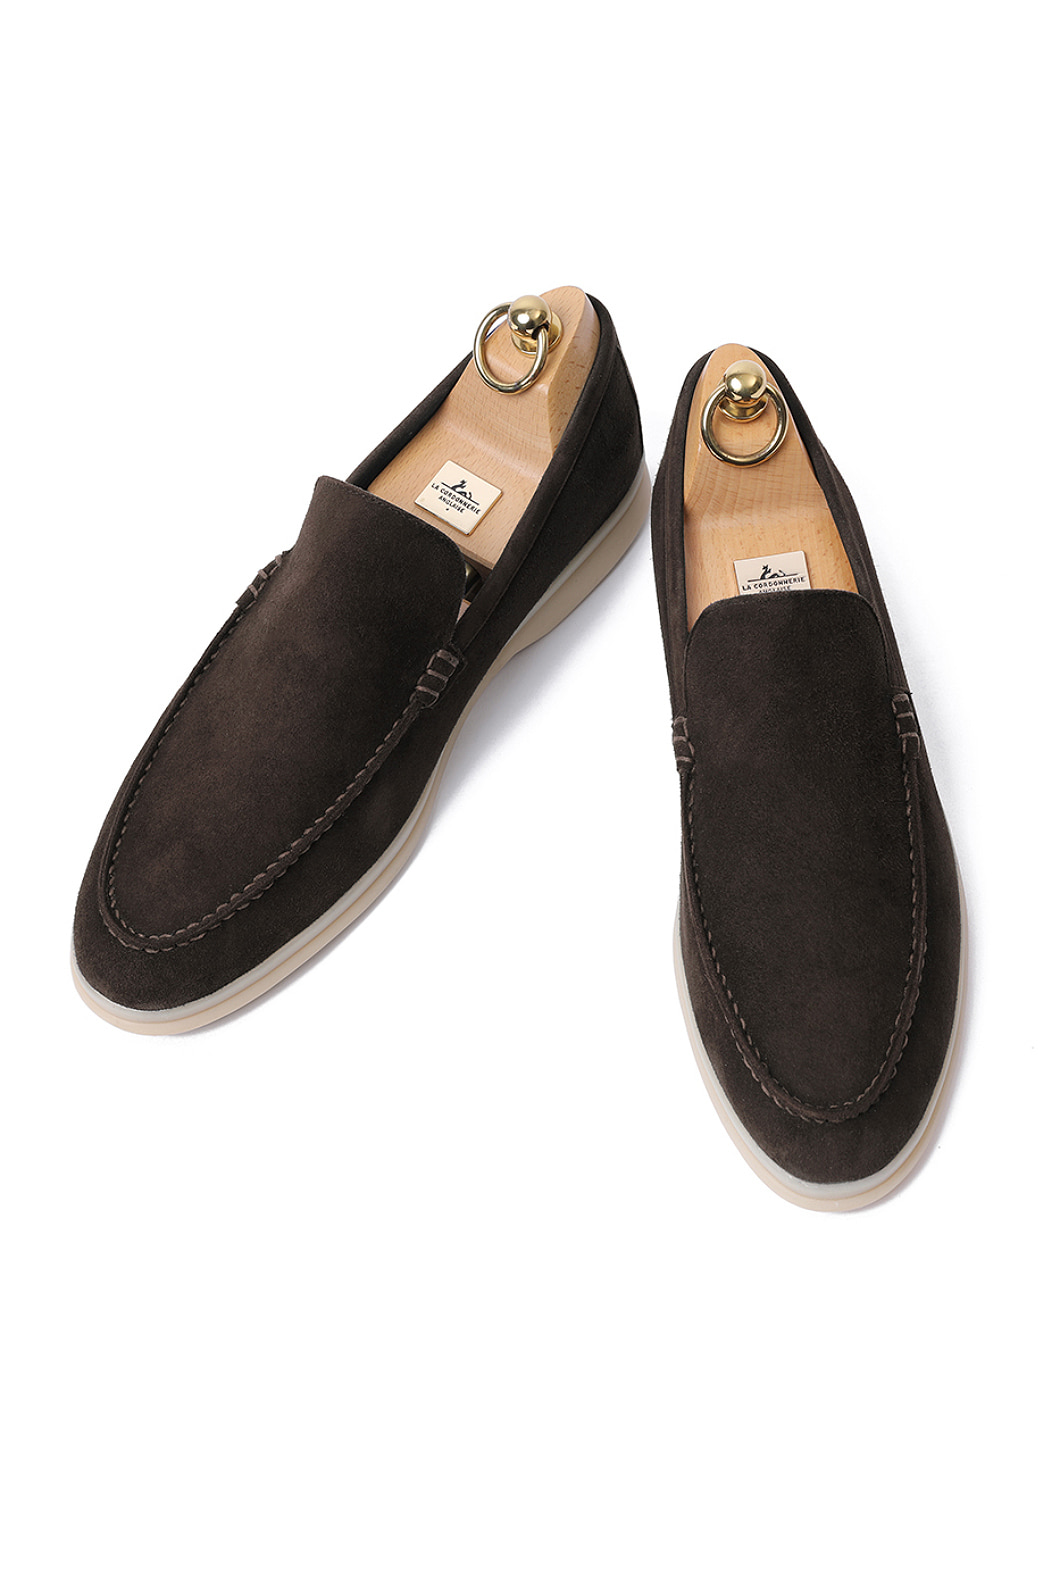 LOWER SUEDE LOAFER-DARK BROWNITALY Leather